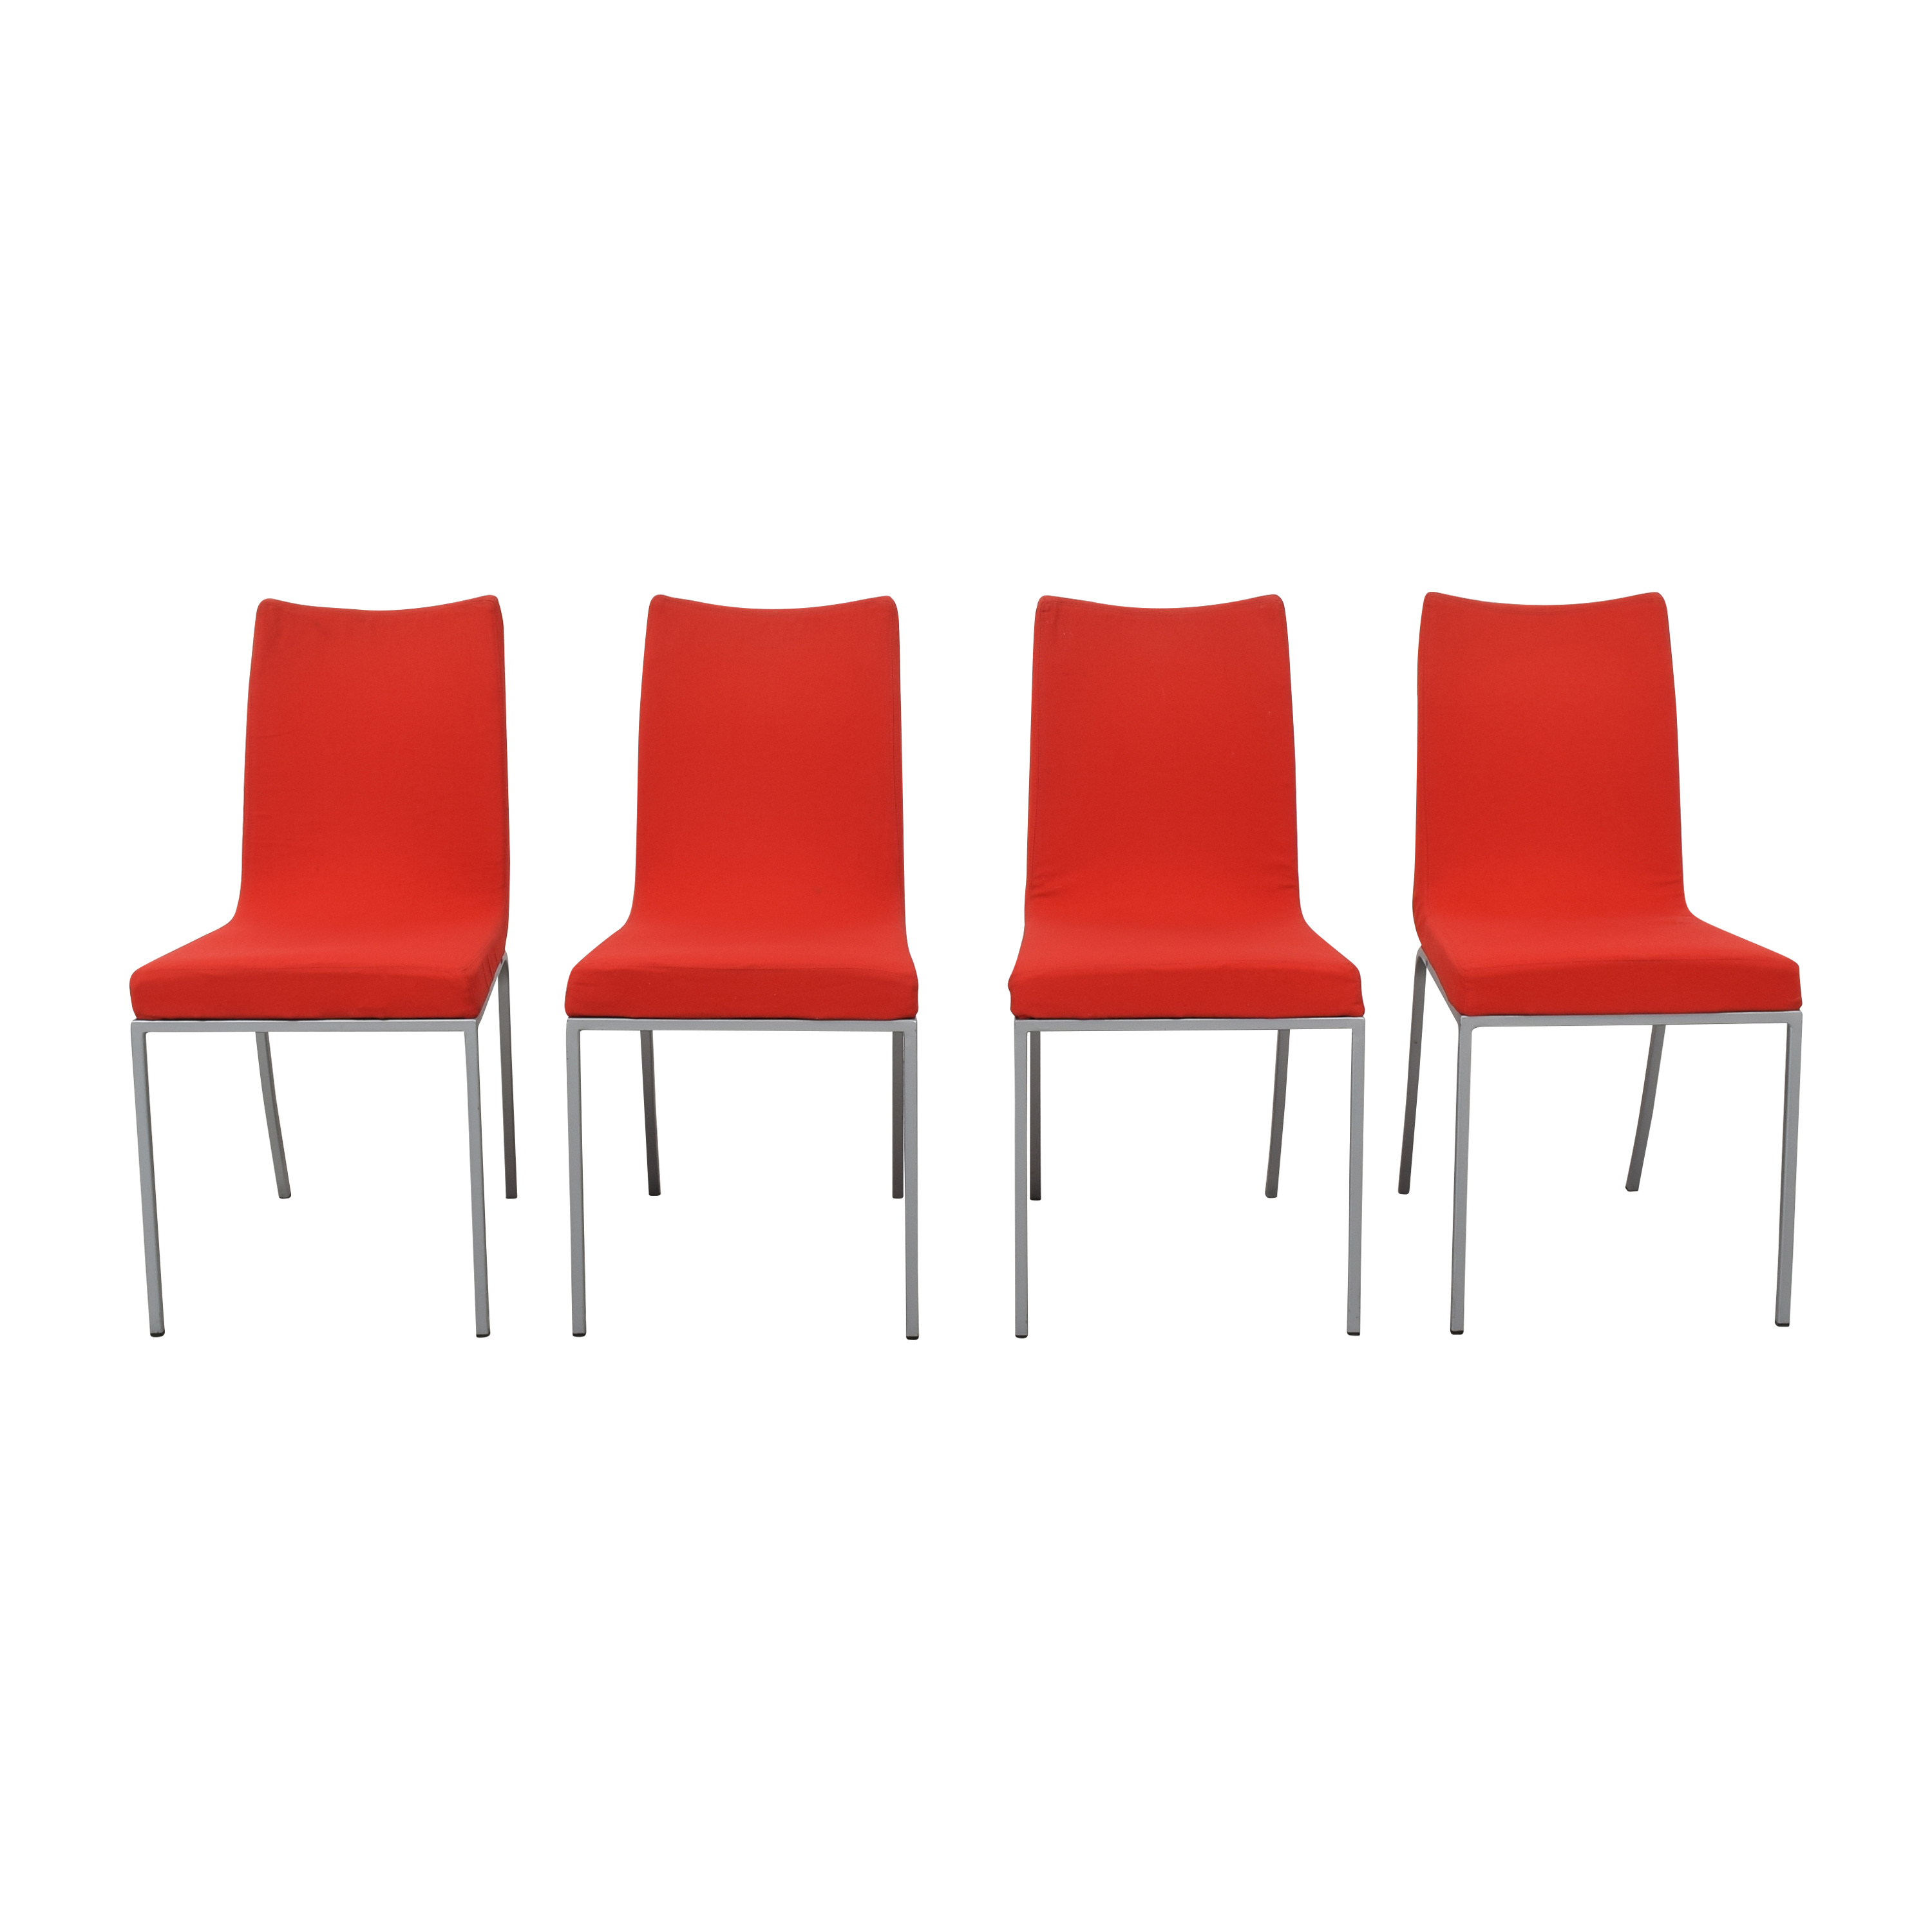 buy Vibieffe Modern Dining Side Chairs Vibieffe Chairs